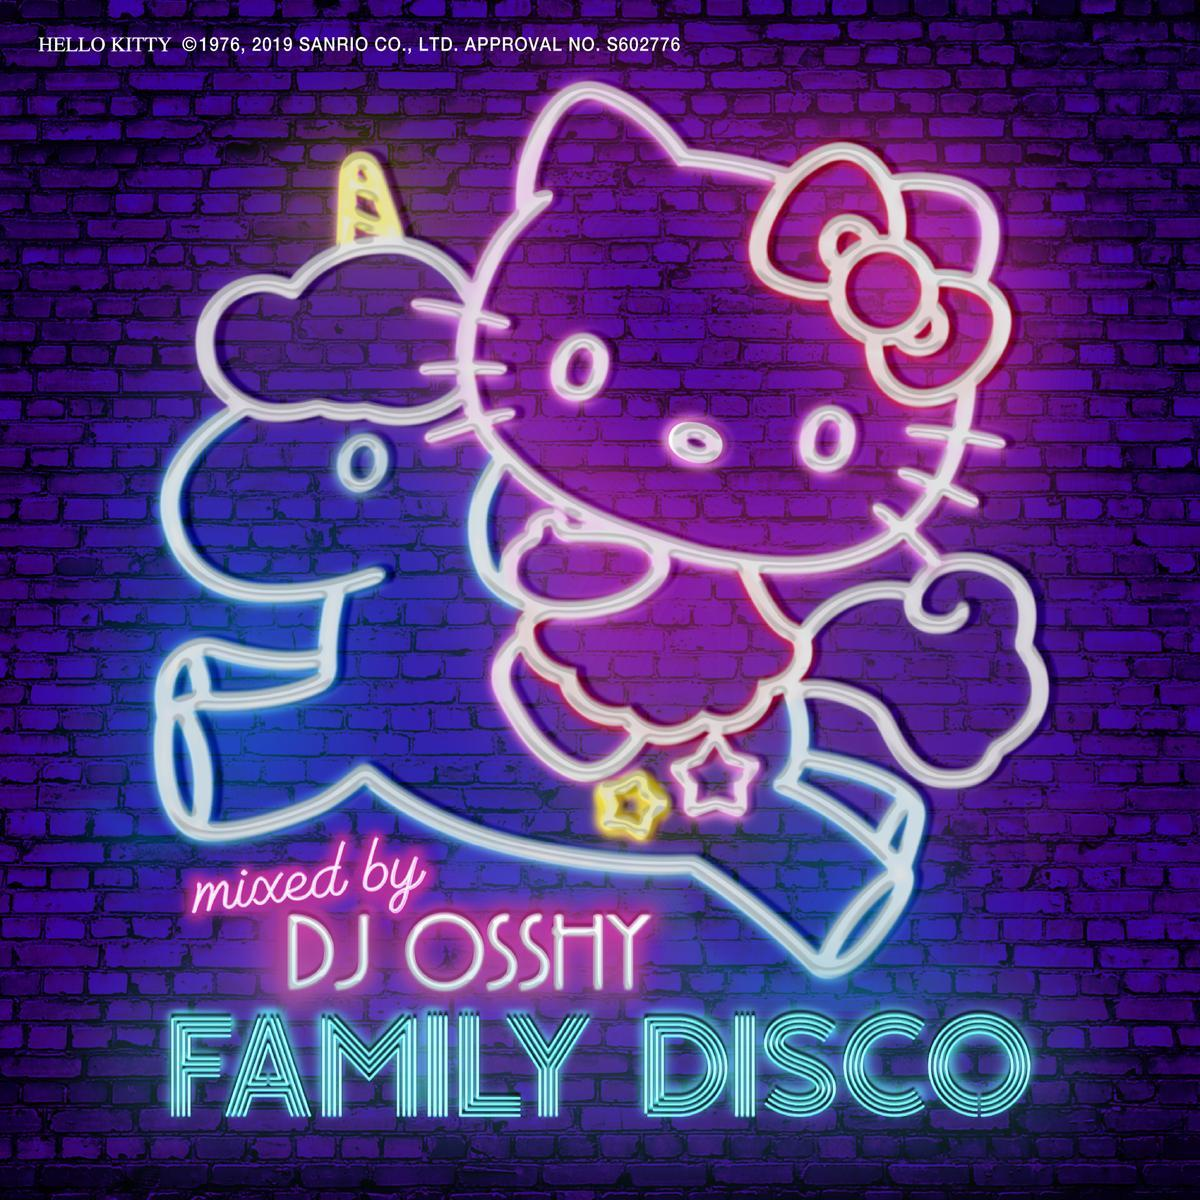 FAMILY DISCO mixed by DJ OSSHY